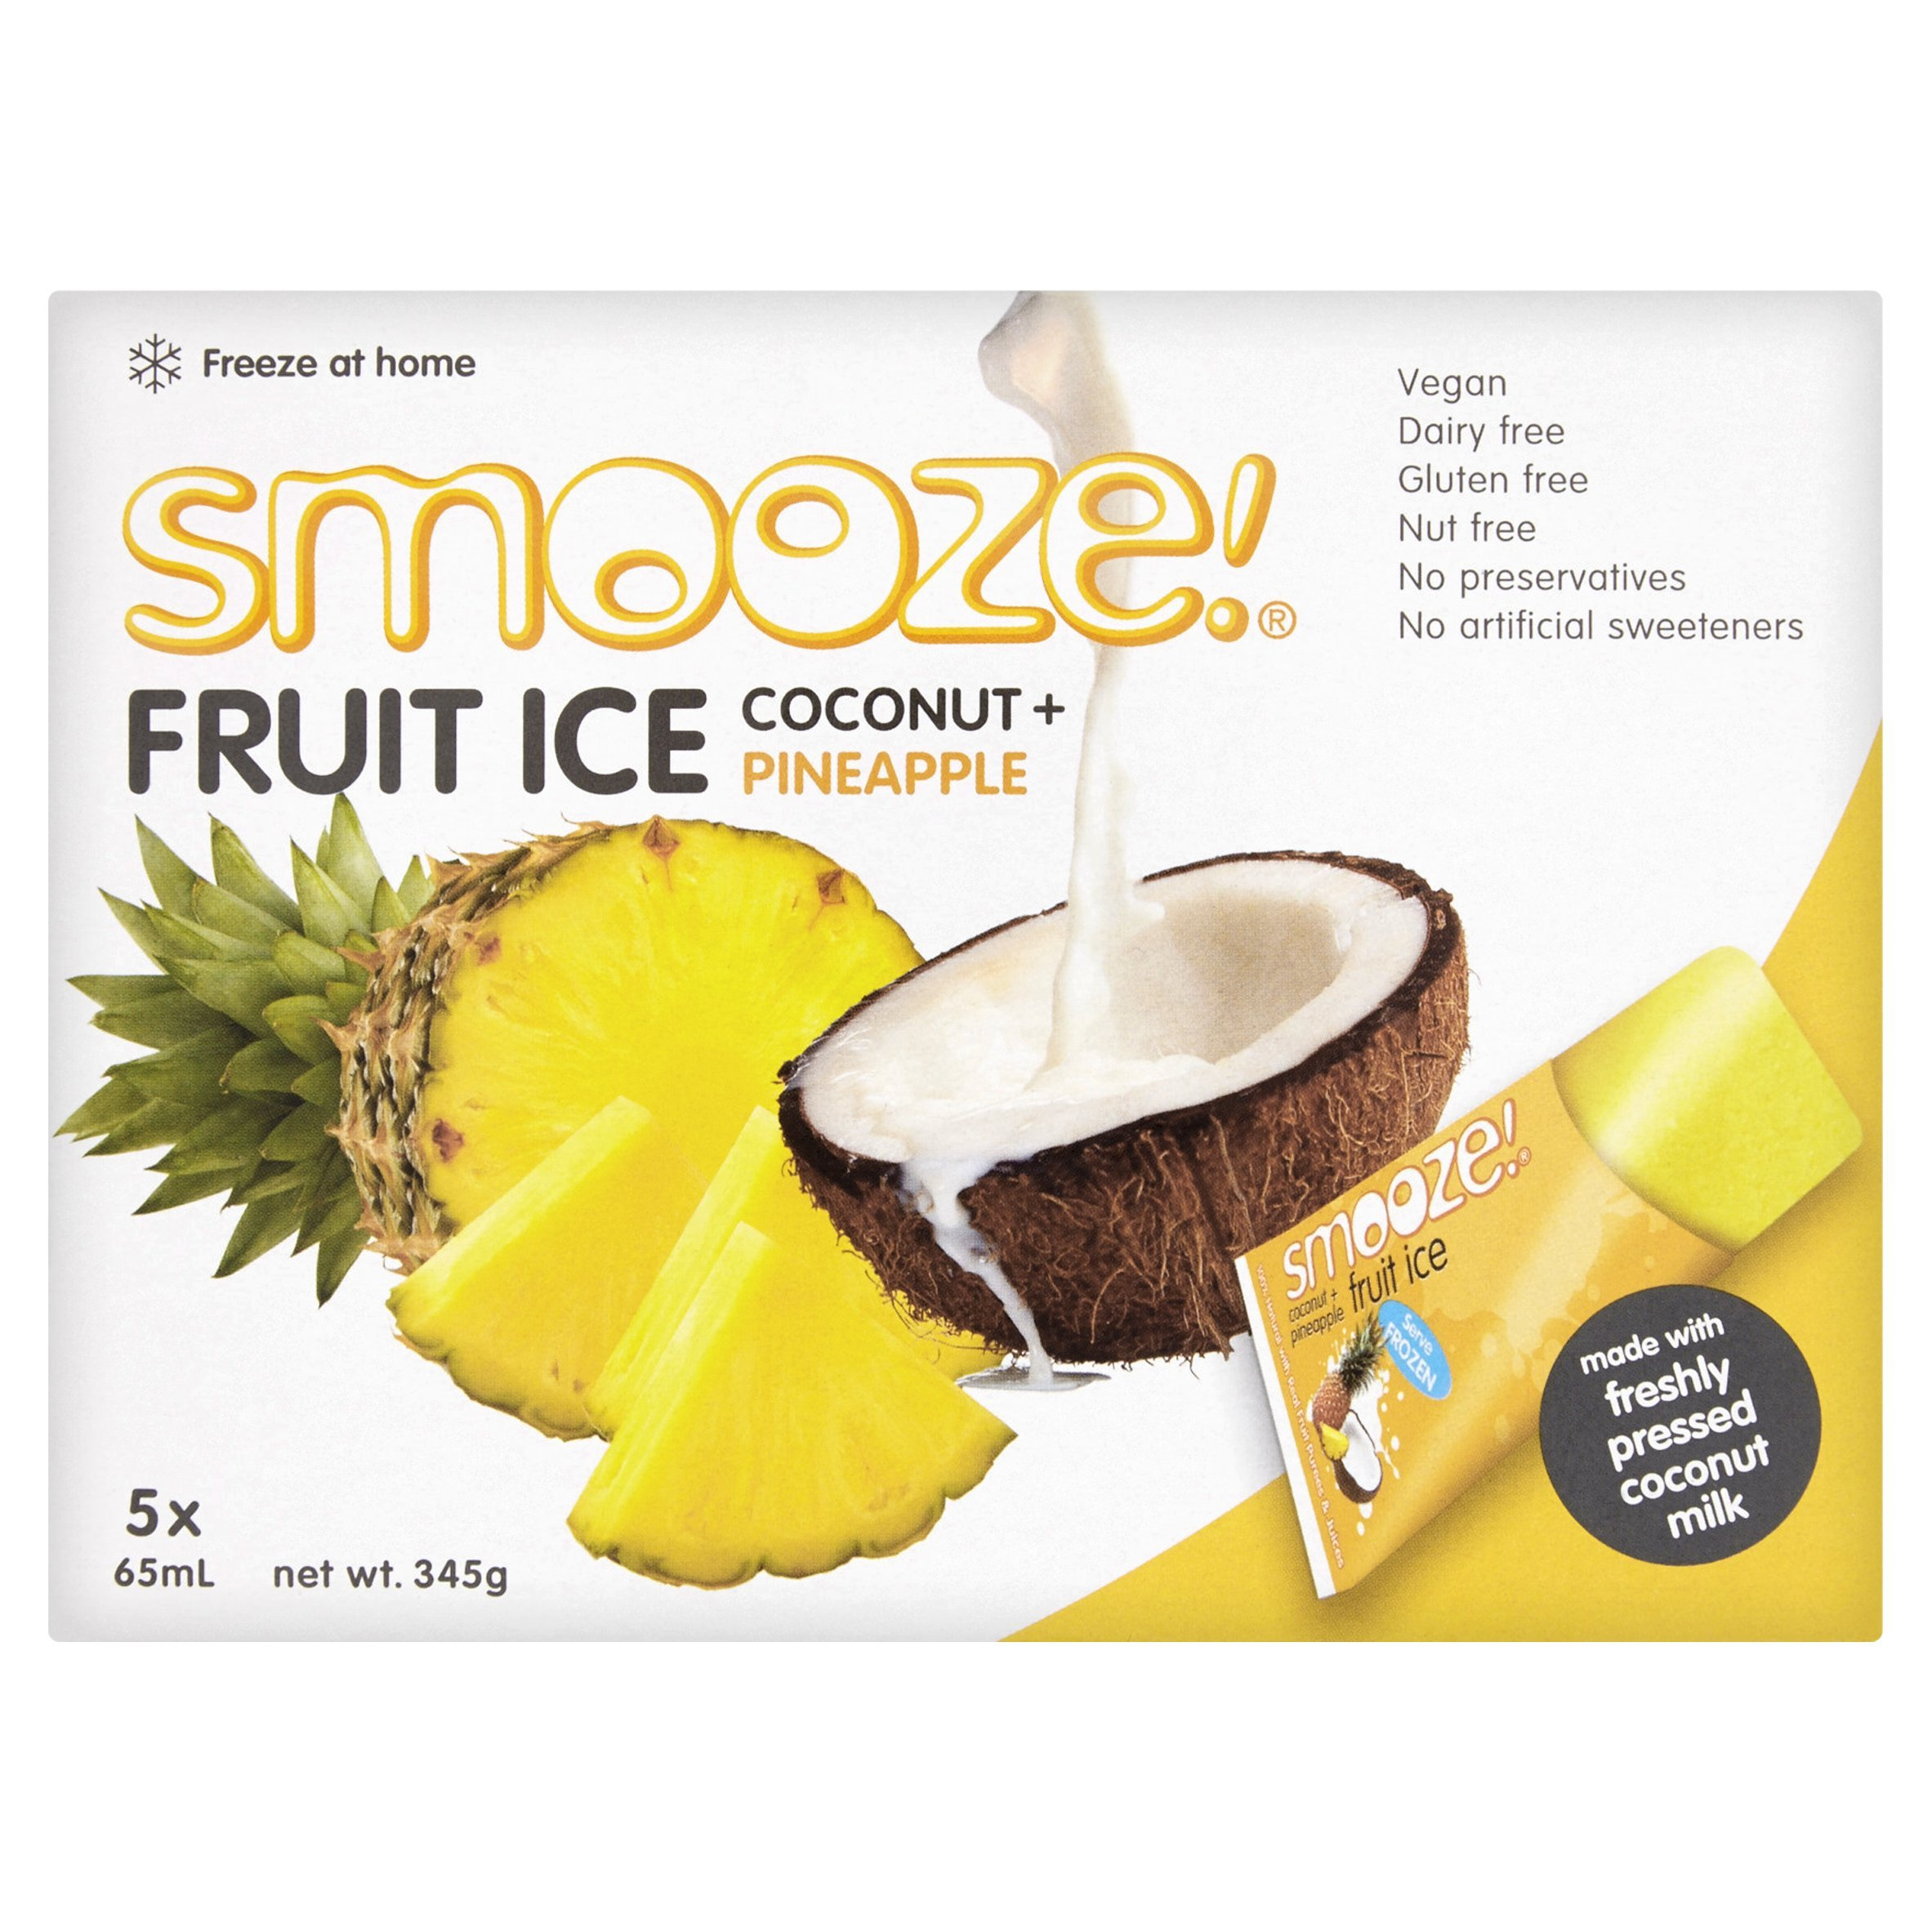 Smooze Pineapple Fruit Ice Lollies 5 x 65ml - Pack of 6